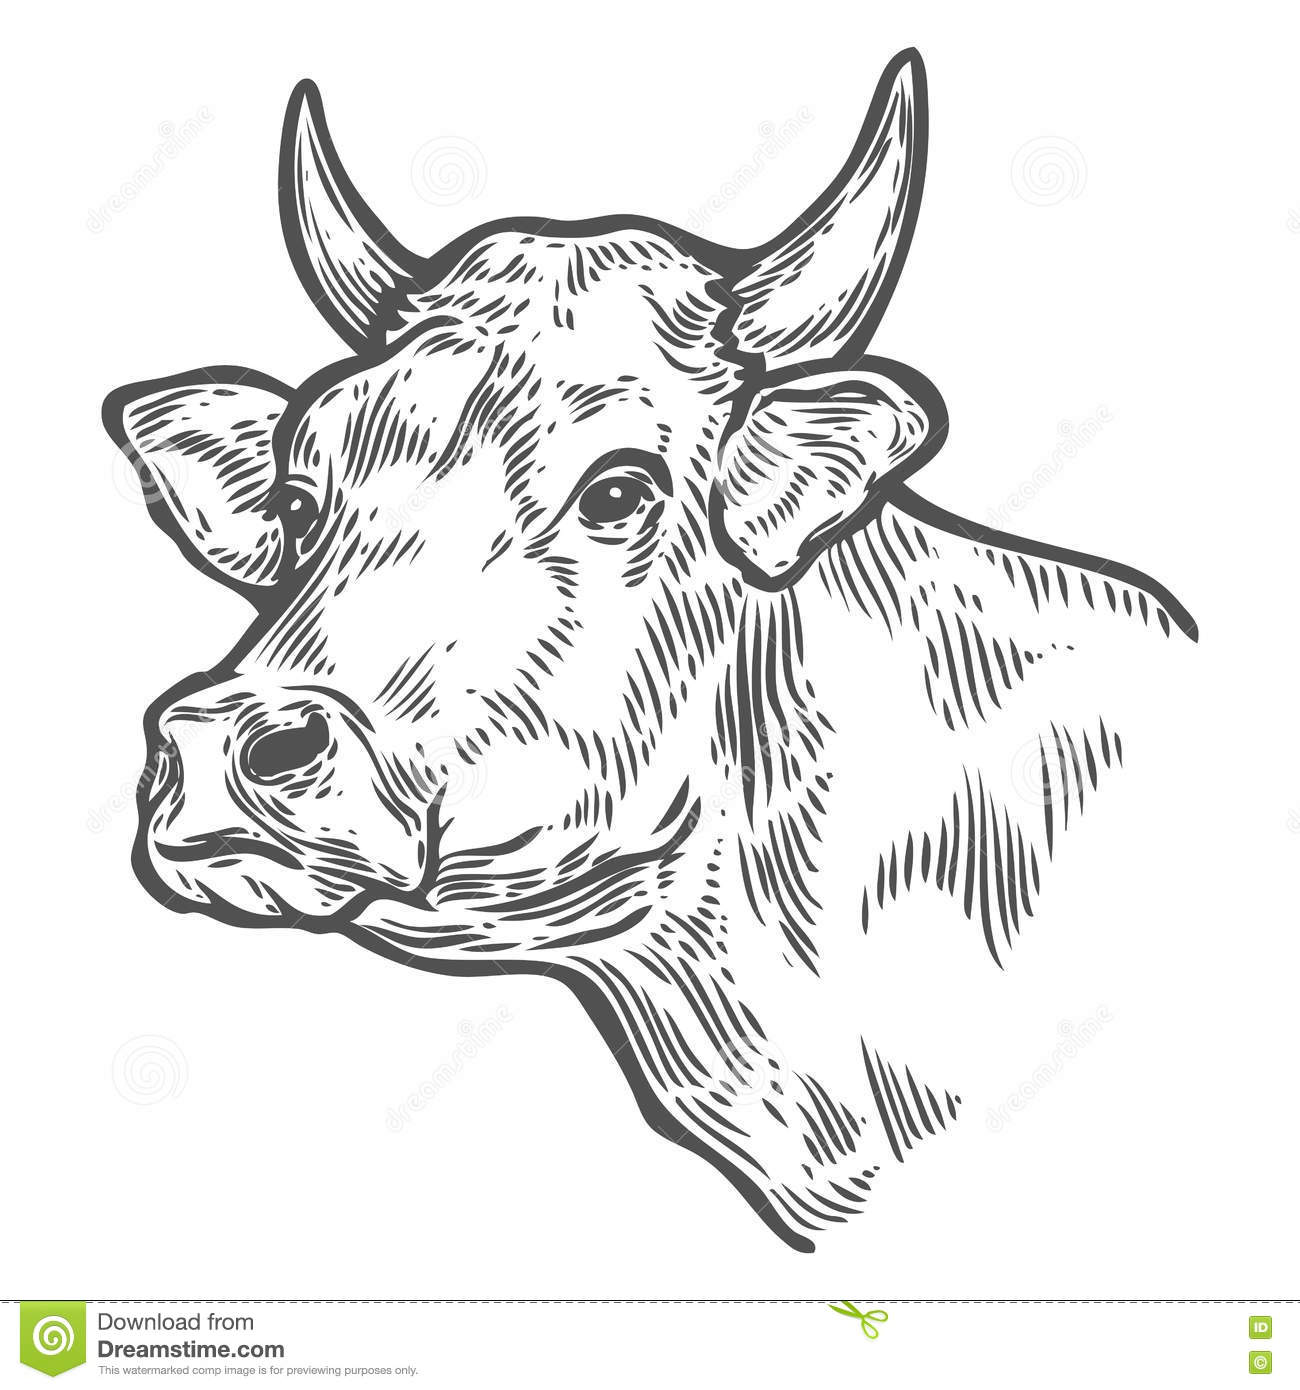 Cows Head. Hand Drawn Sketch In A Graphic Style. Vintage